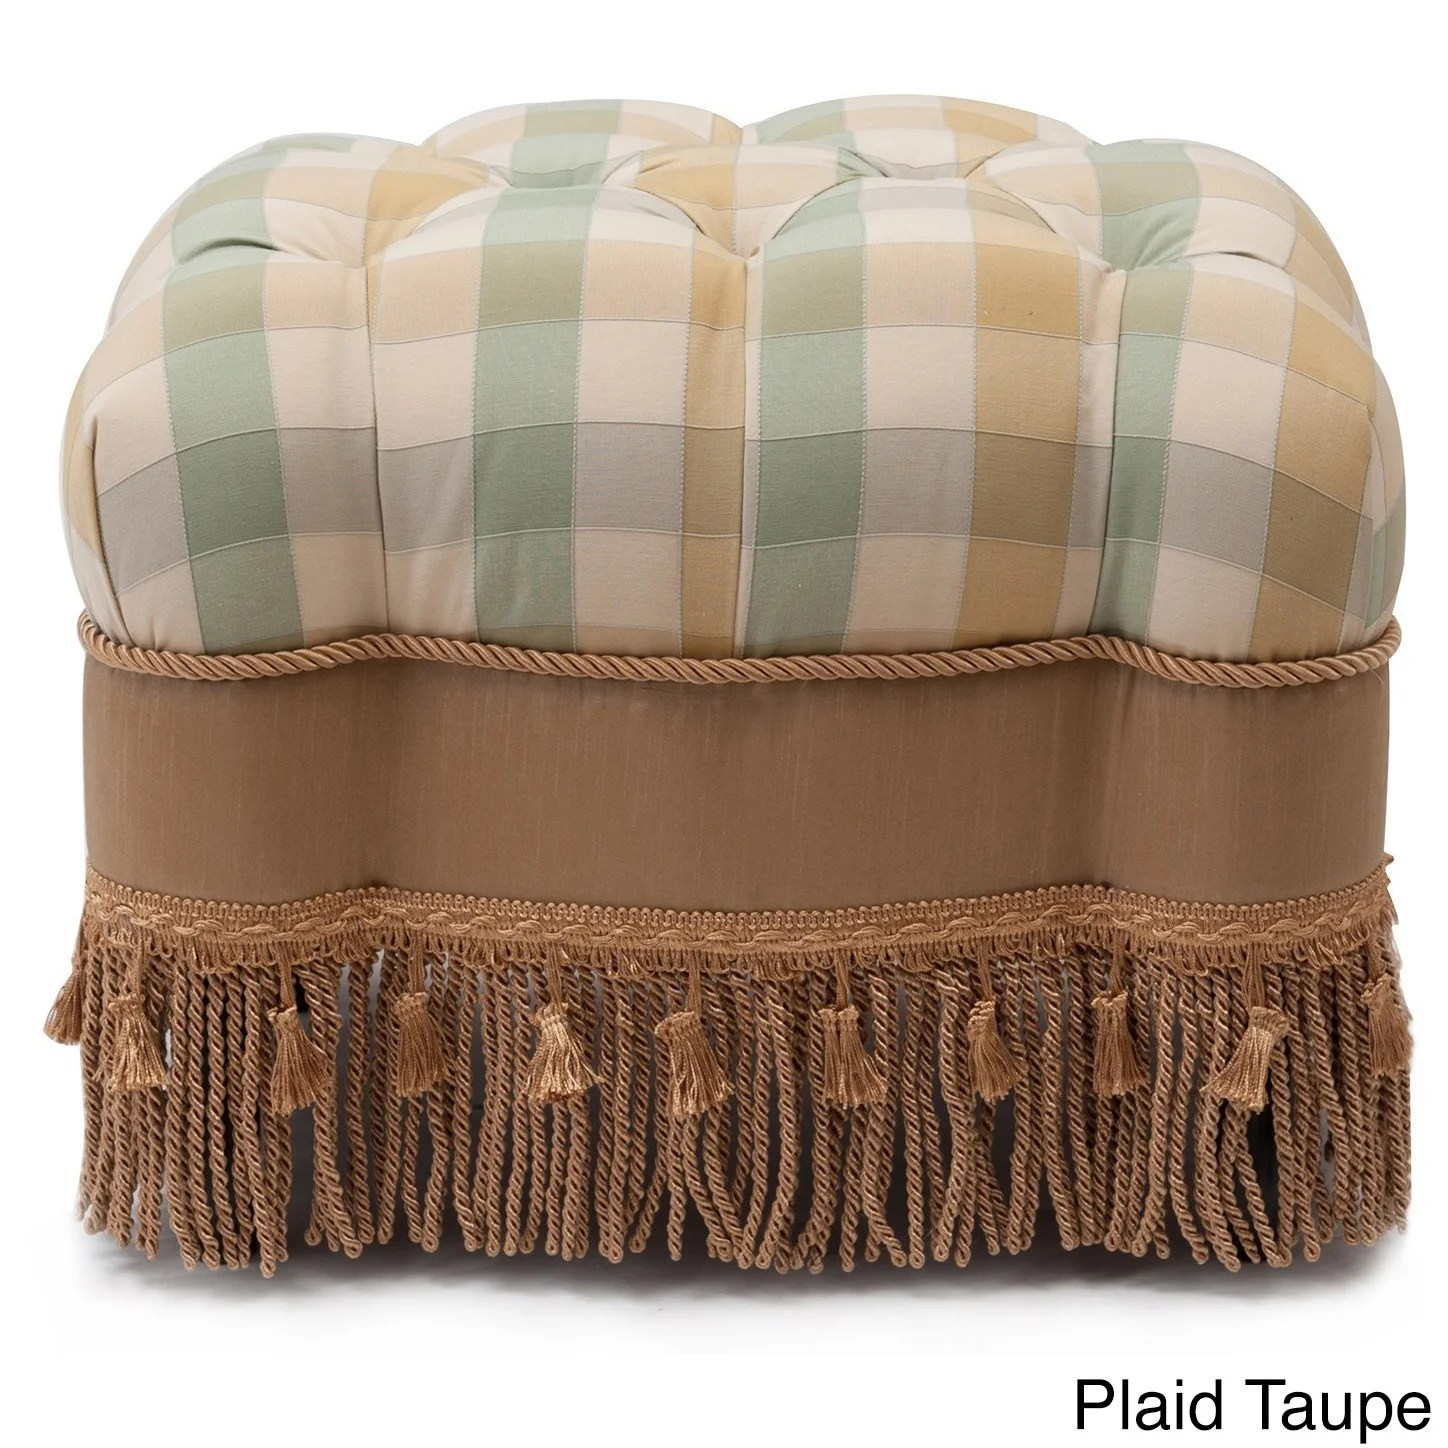 Plaid Taupe Jennifer Taylor Nancy Traditional Vanity Stool